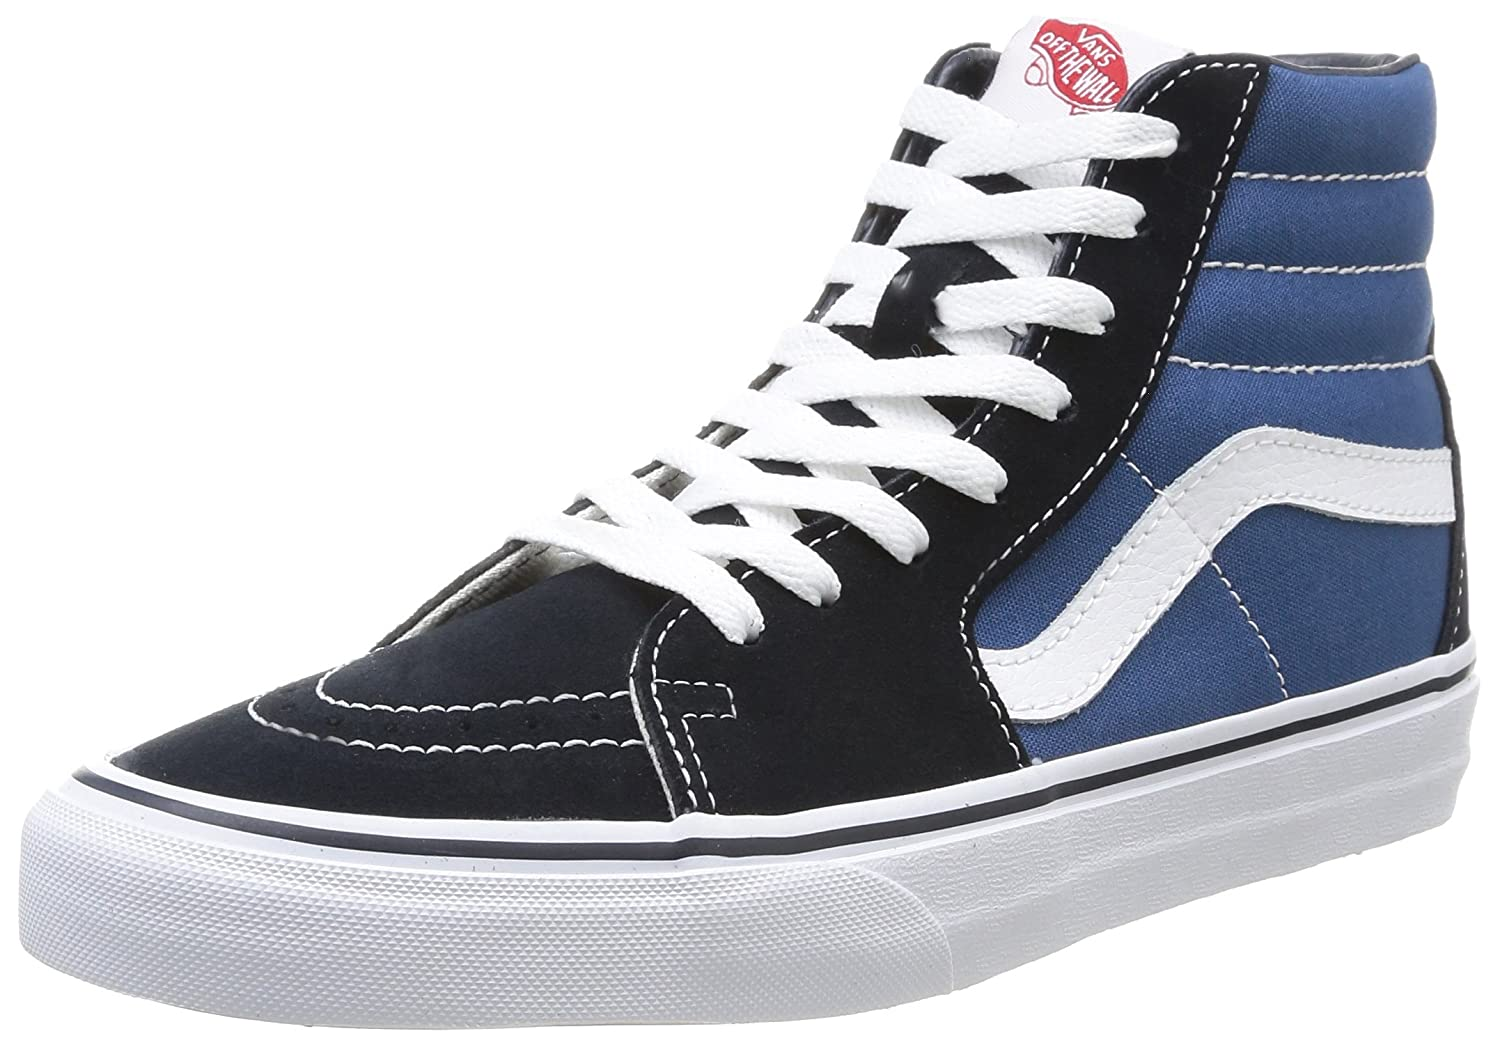 Vans Sk8-Hi Unisex Casual High-Top Skate Shoes, Comfortable and Durable in Signature Waffle Rubber Sole B001AIQN2A 11 B(M) US Women / 9.5 D(M) US Men|Navy